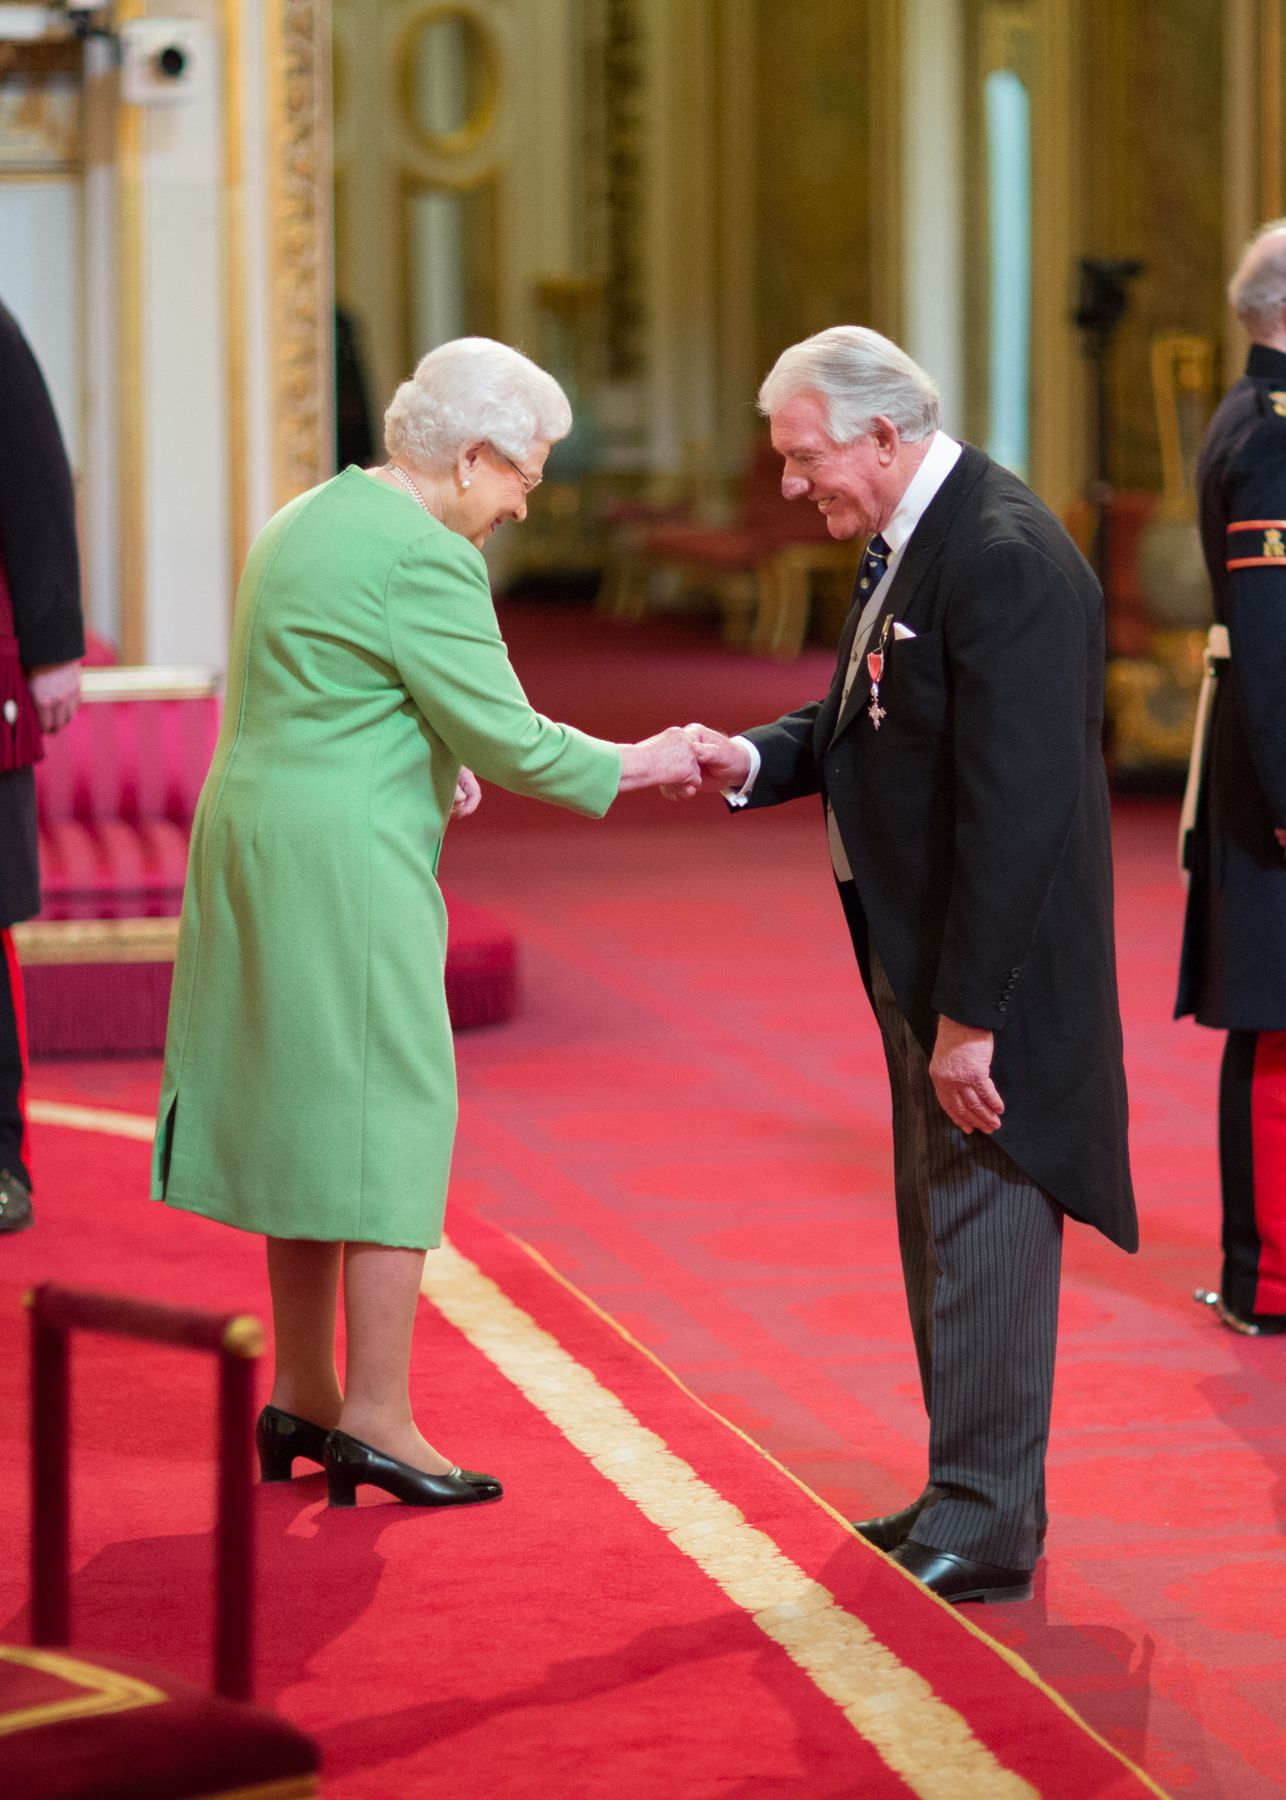 Angus receiving MBE from Queen Elizabeth II - credit - Image courtesy of British Ceremonial Arts Limited.